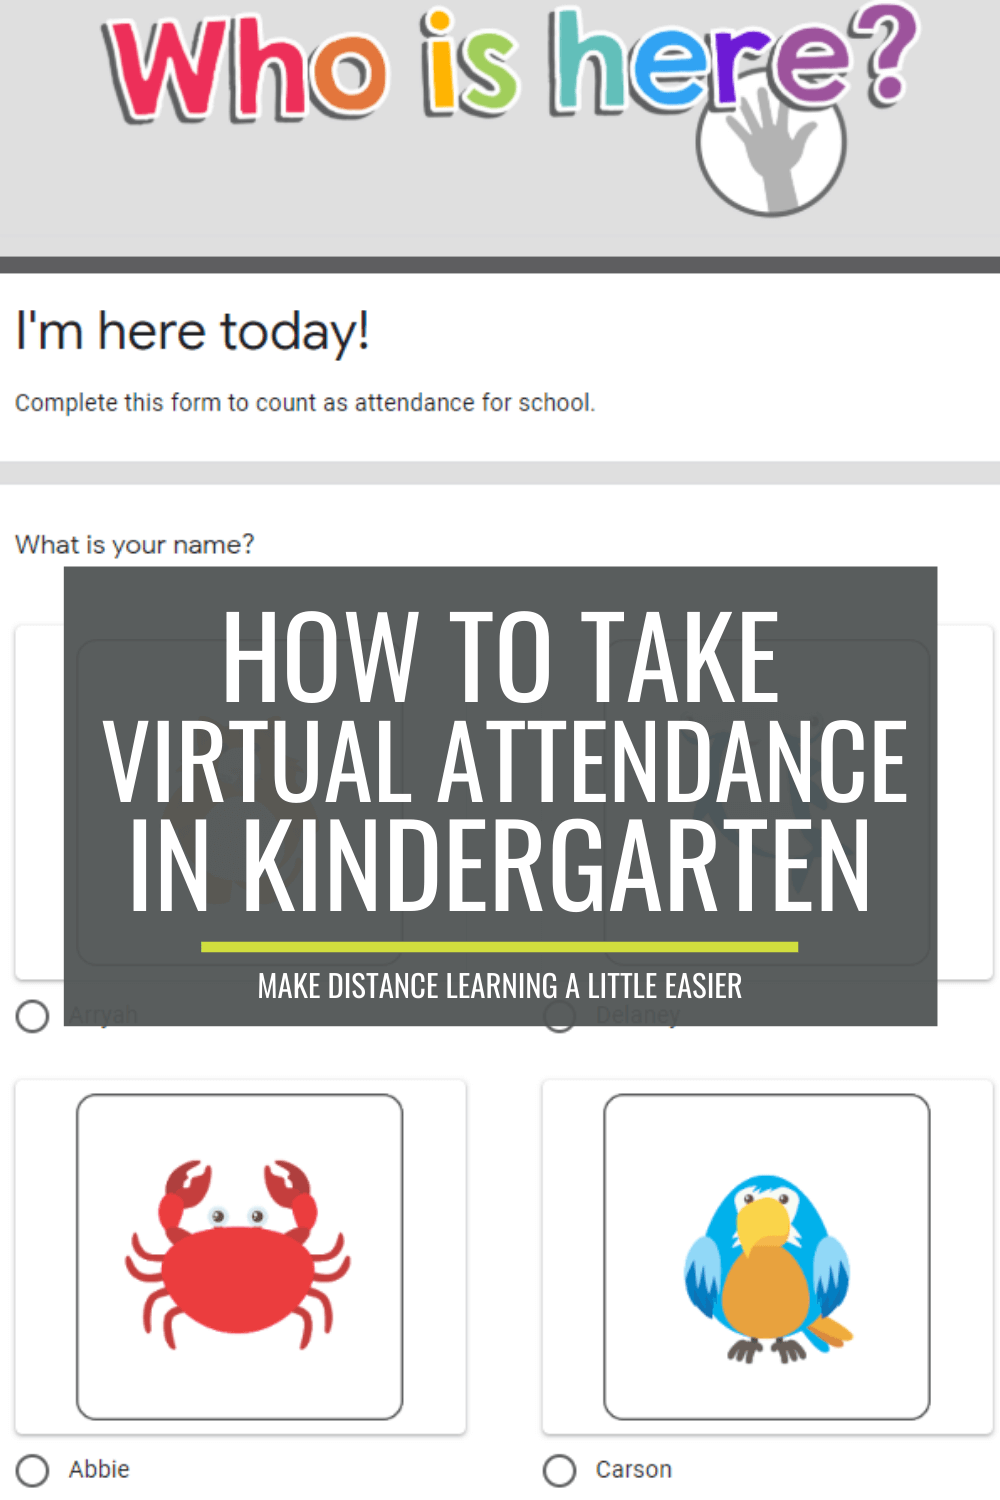 How to Take Virtual Attendance in Kindergarten